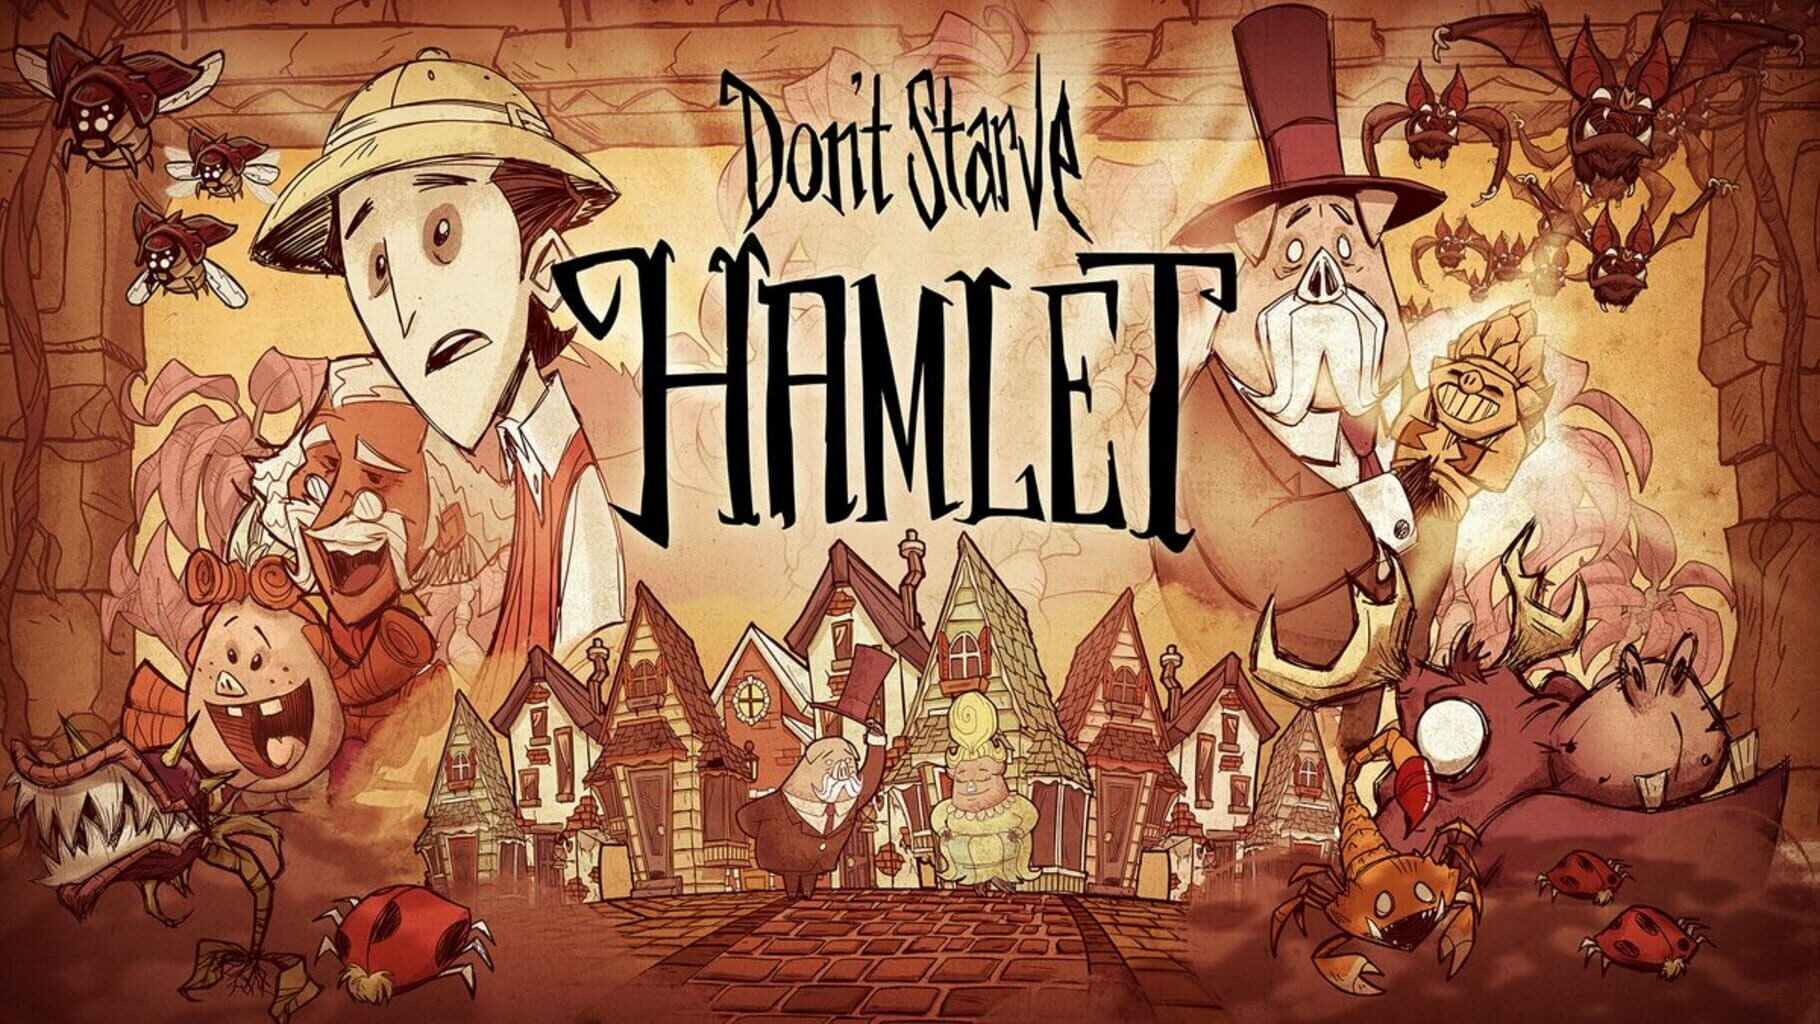 buy Don't Starve: Hamlet cd key for all platform